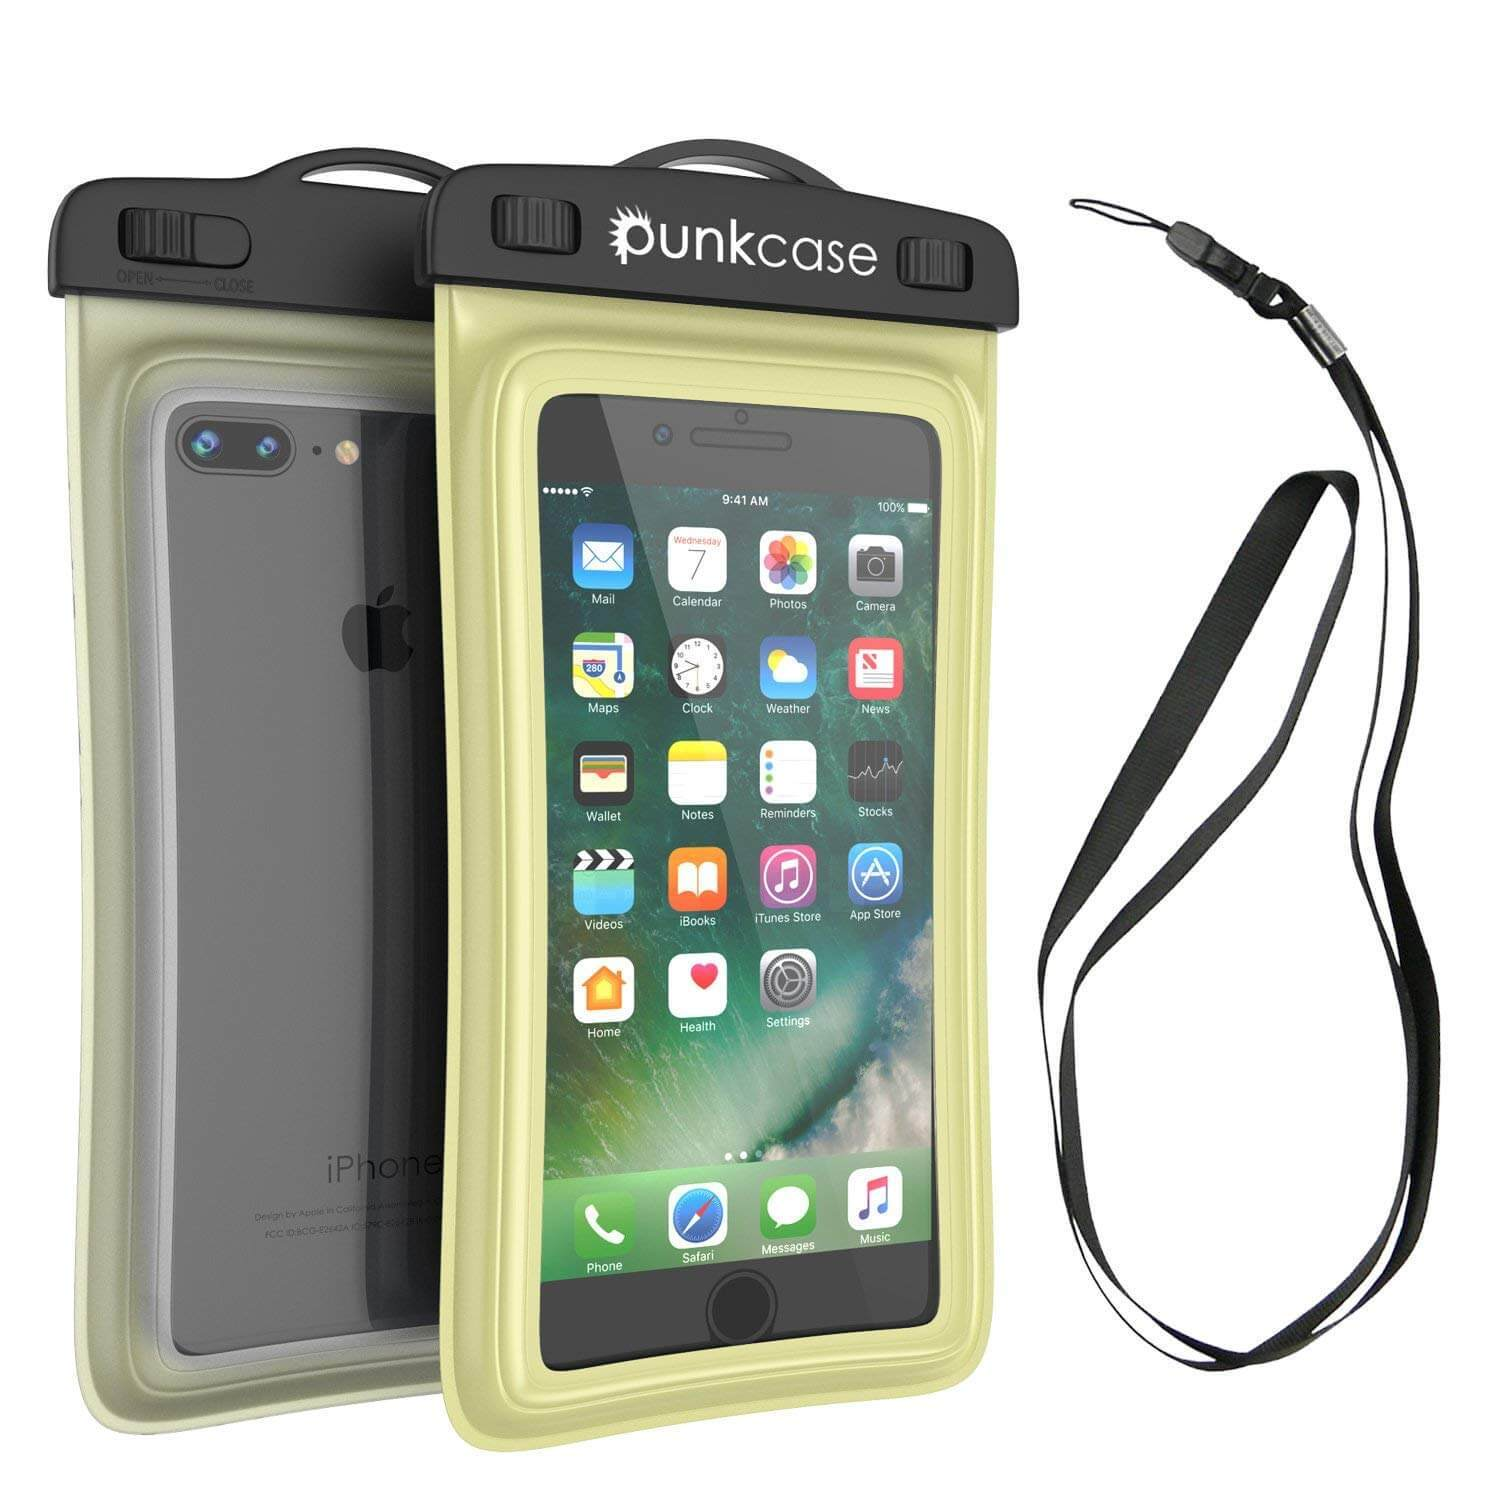 Waterproof Phone Pouch, PunkBag Universal Floating Dry Case Bag for most Cell Phones [Light Green]